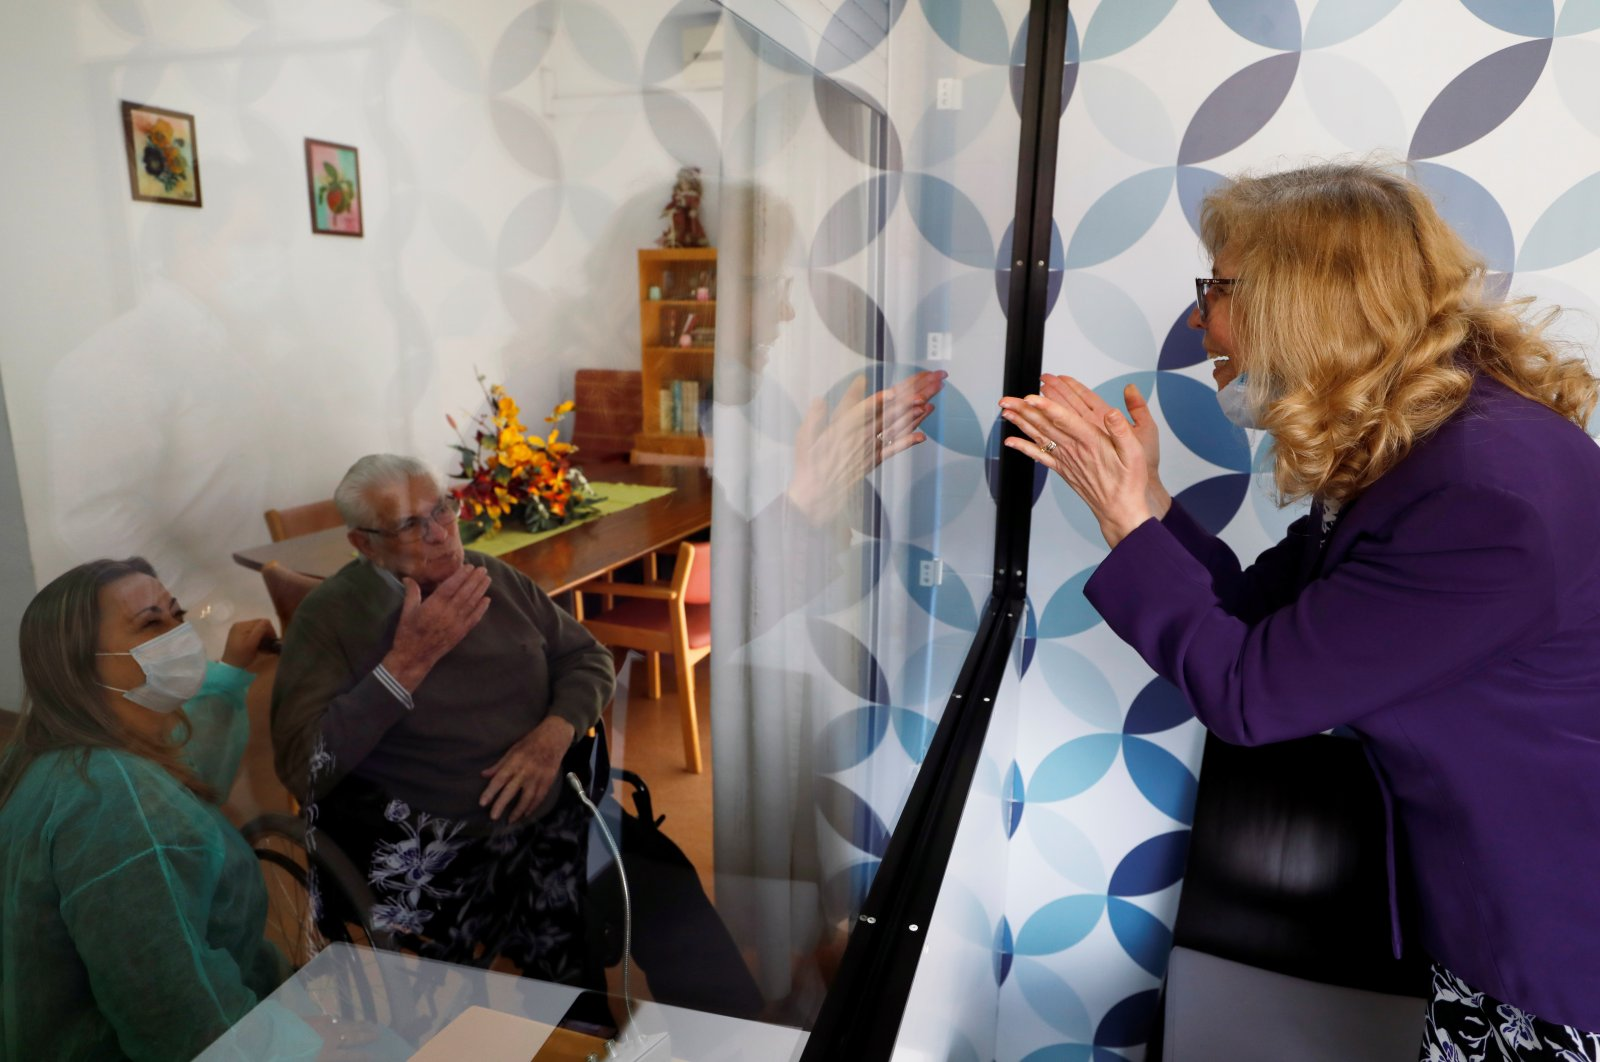 Maria das Merces speaks with her father Adriano Borges through a glass window to prevent infection at an elderly residence as the spread of the coronavirus disease continues, Montijo, Portugal, May 12, 2020.